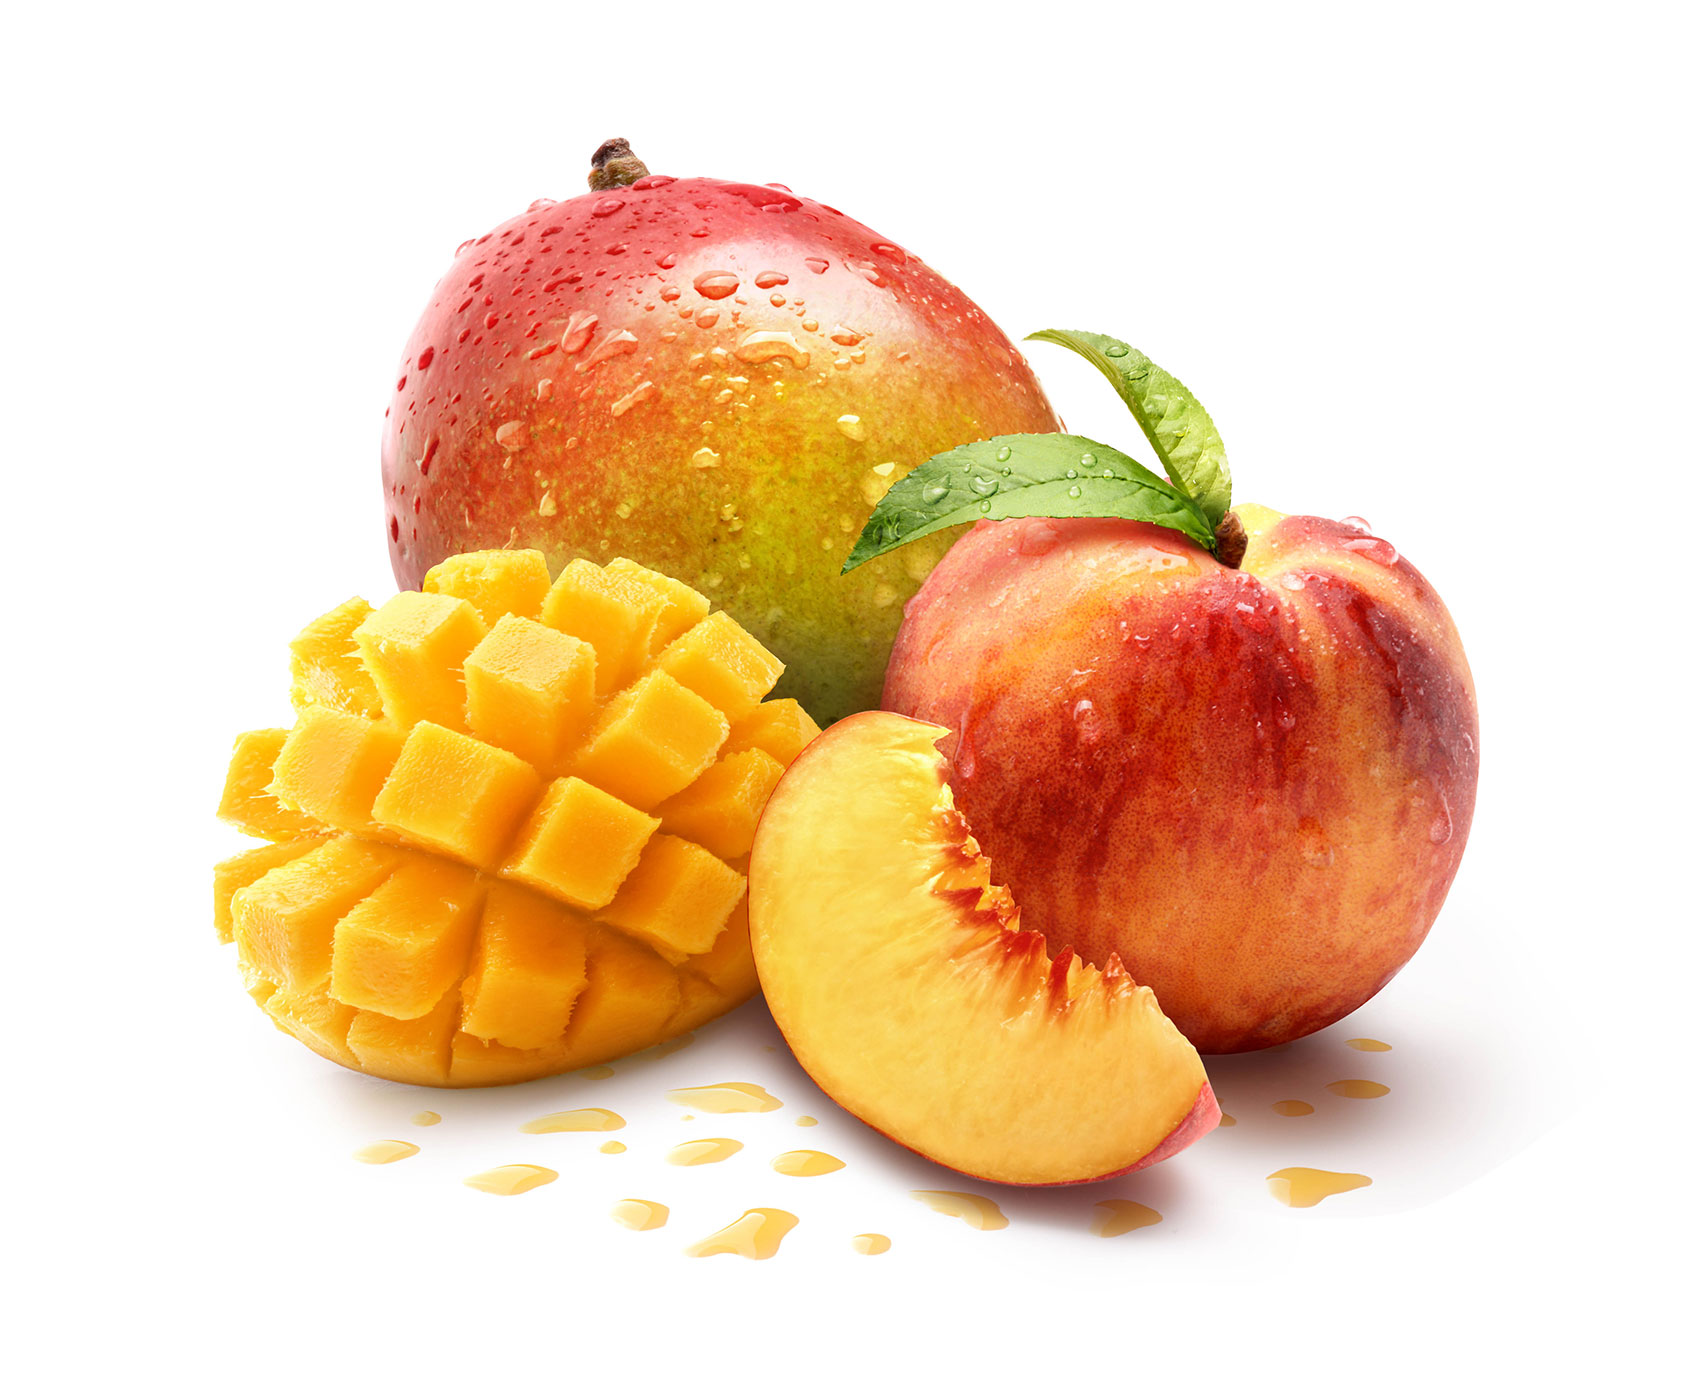 mango_peach_fruit